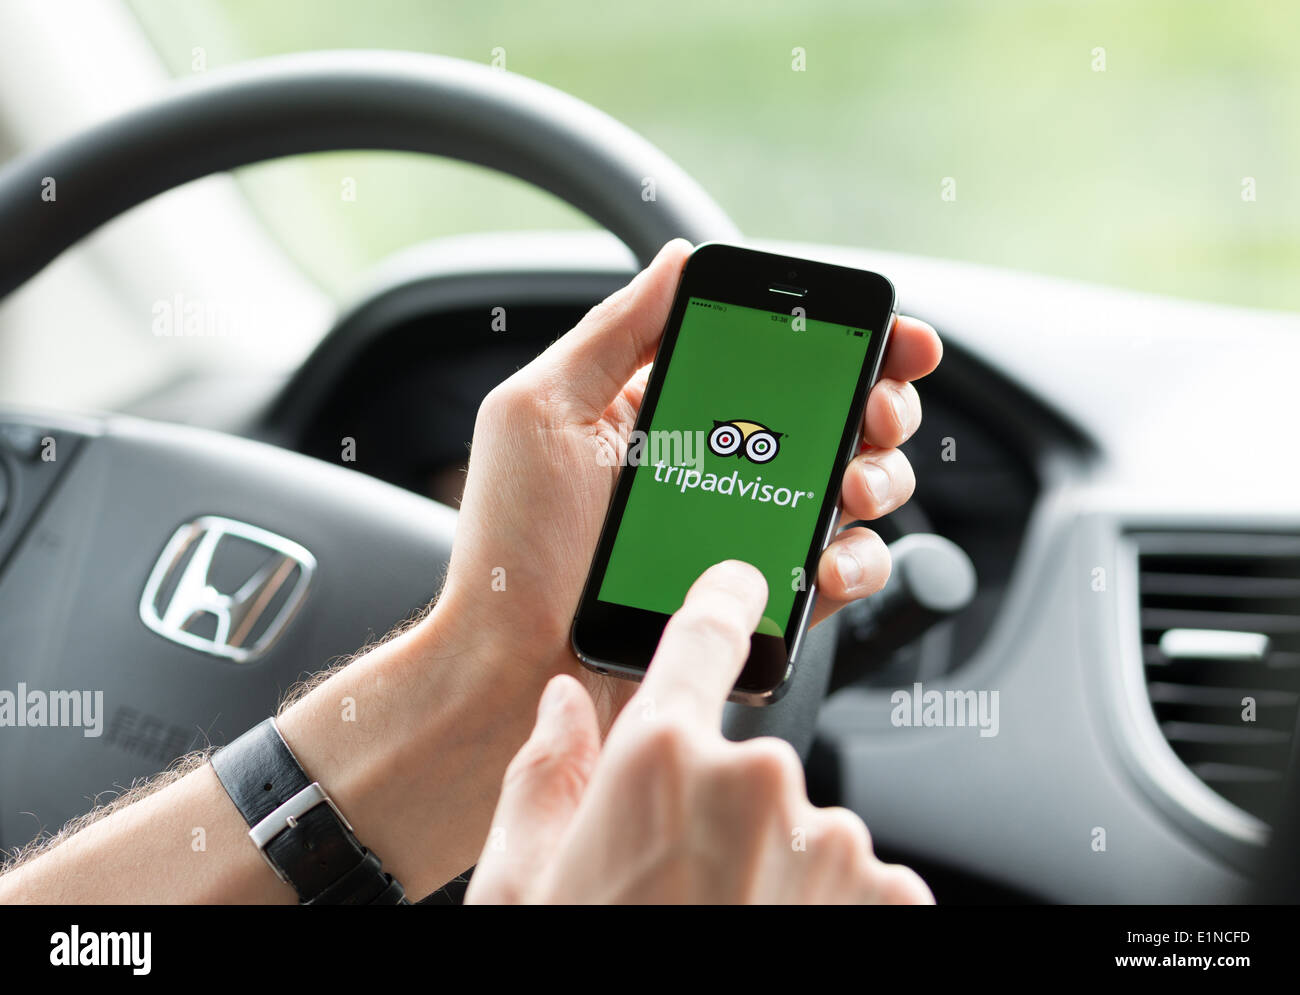 Man in a car planning a trip using Tripadvisor app on Apple iPhone 5S - Stock Image